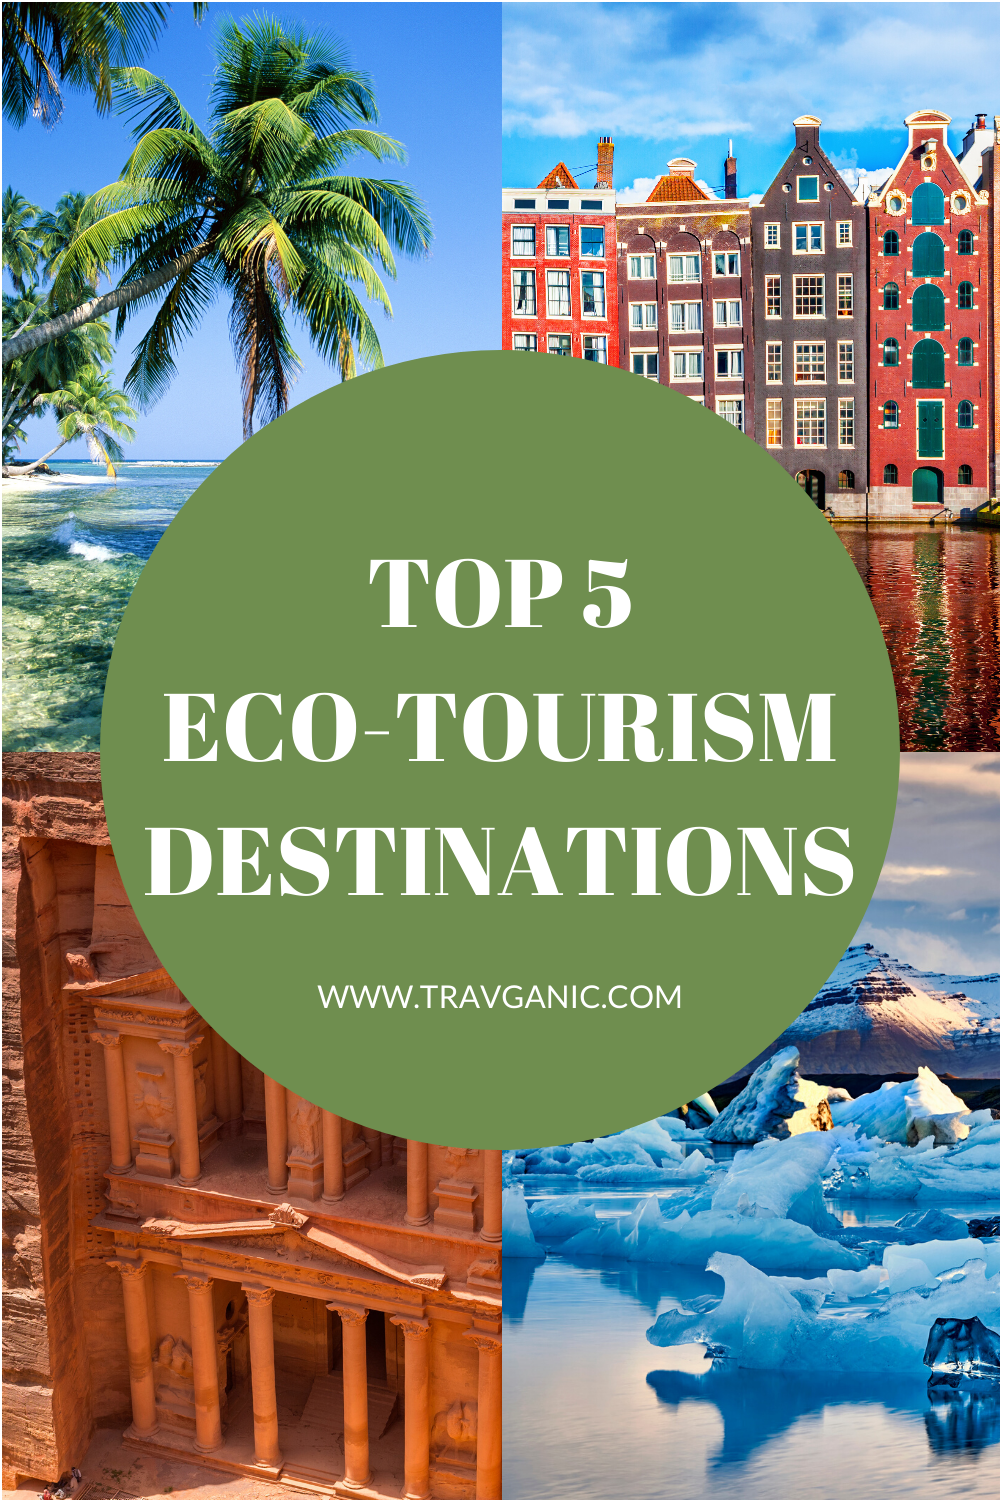 We all love to travel, but now more than ever we need to think about traveling sustainably! Check out our picks for top five eco-tourism destinations, so you can travel responsibly! #ecotourism #sustainabletravel #travelgreen #travelinspo #travganic